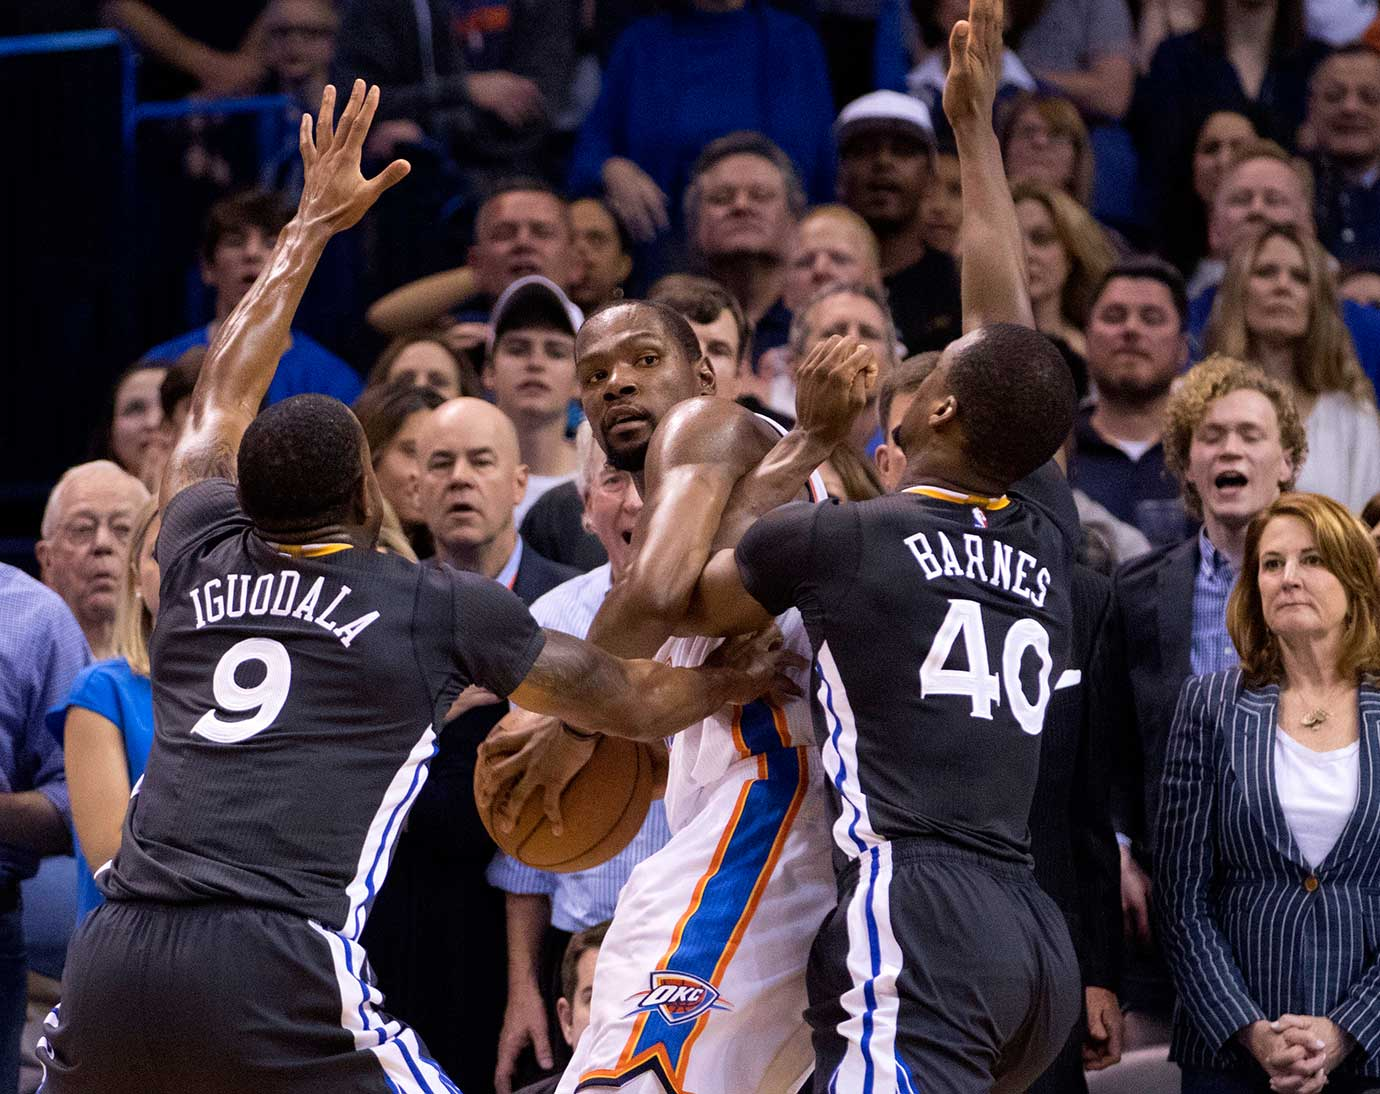 Andre Iguodala and Harrison Barnes trap Kevin Durant in a corner and force him to throw a game-deciding turnover.